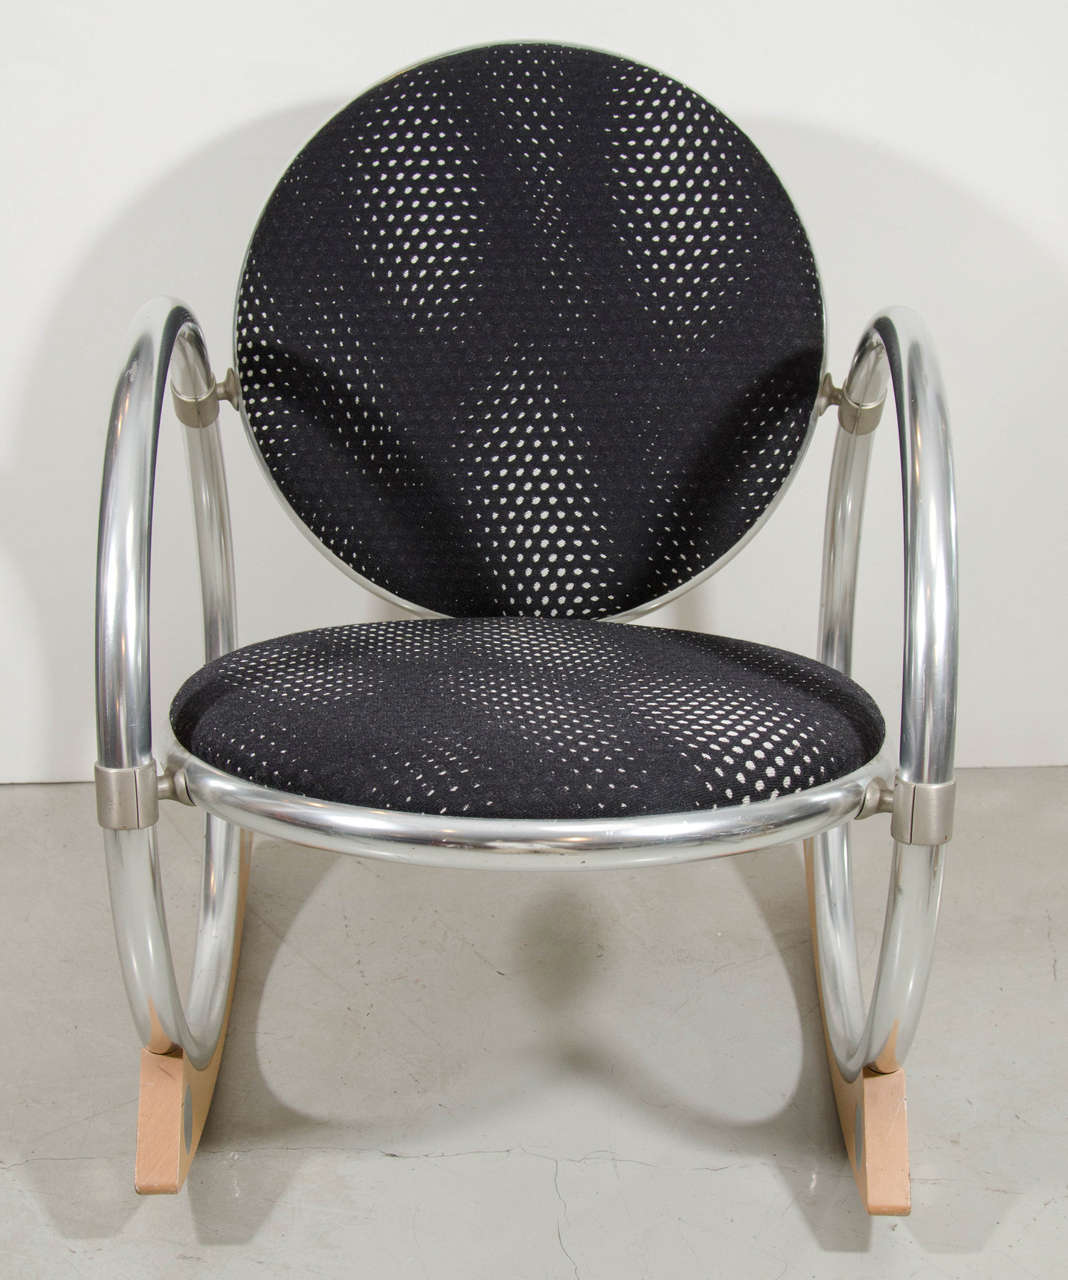 verner panton dondolo for ycami rocking chair for sale at 1stdibs